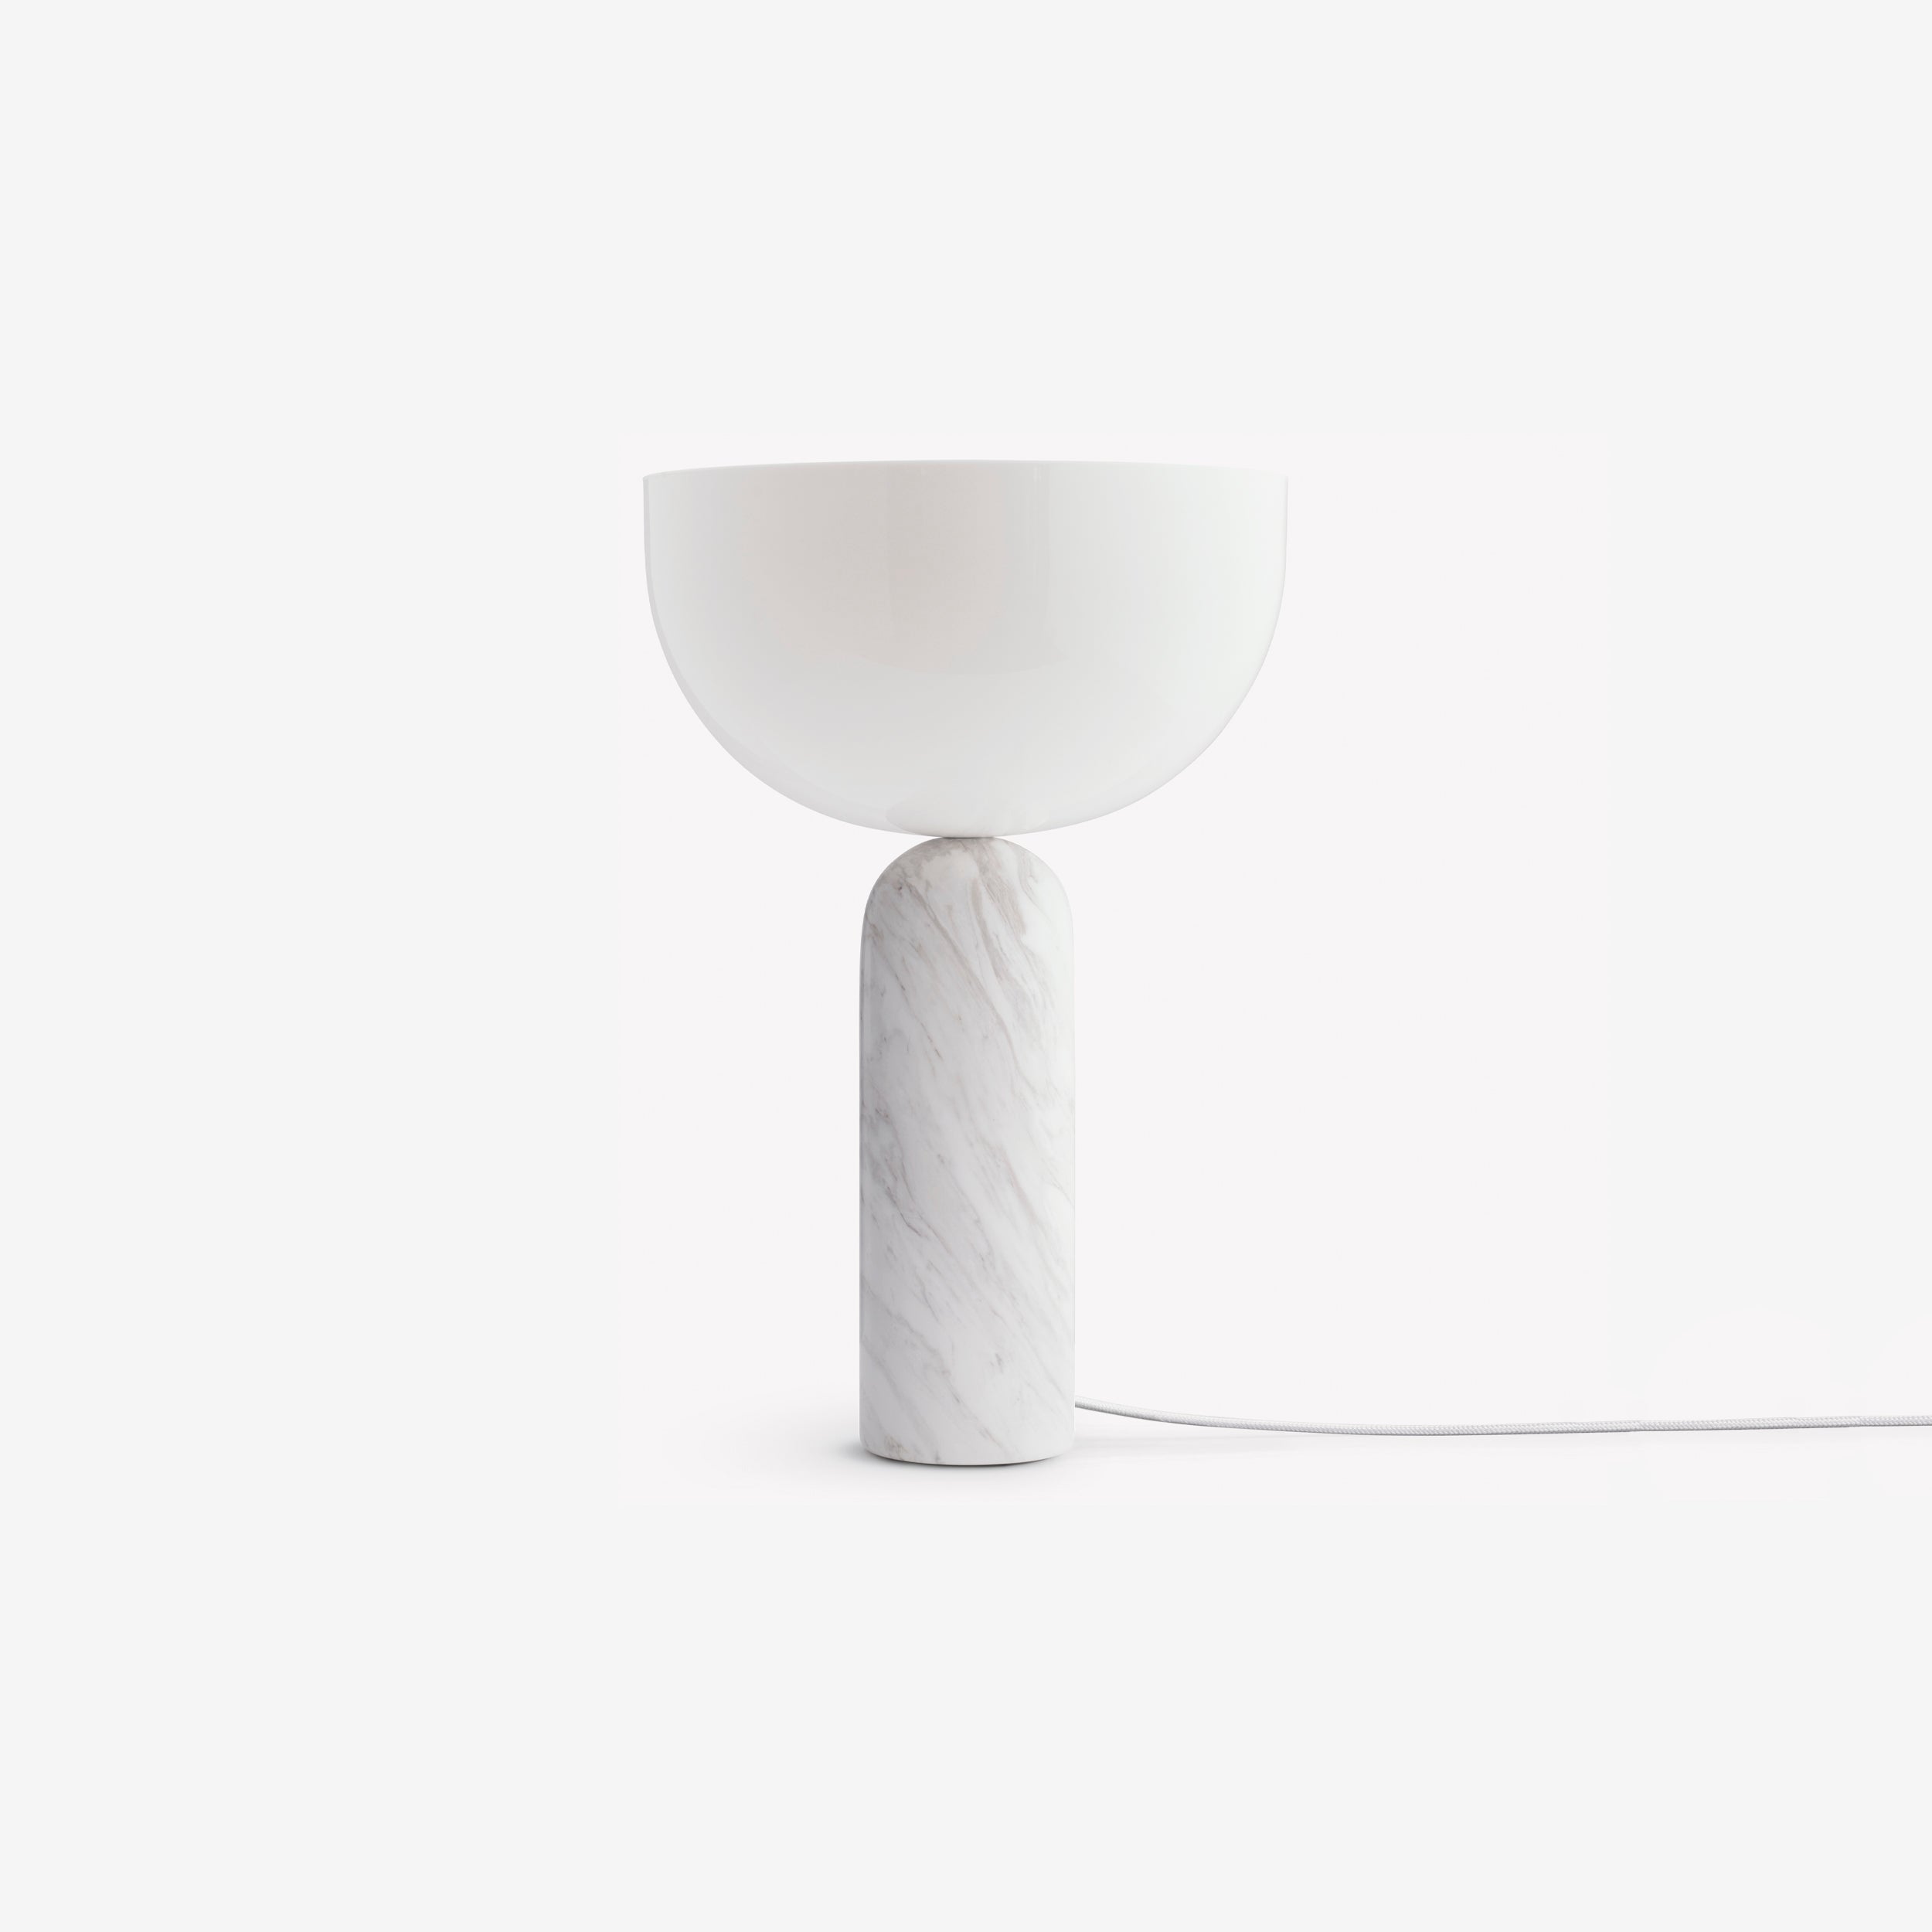 Kizu Table Lamp